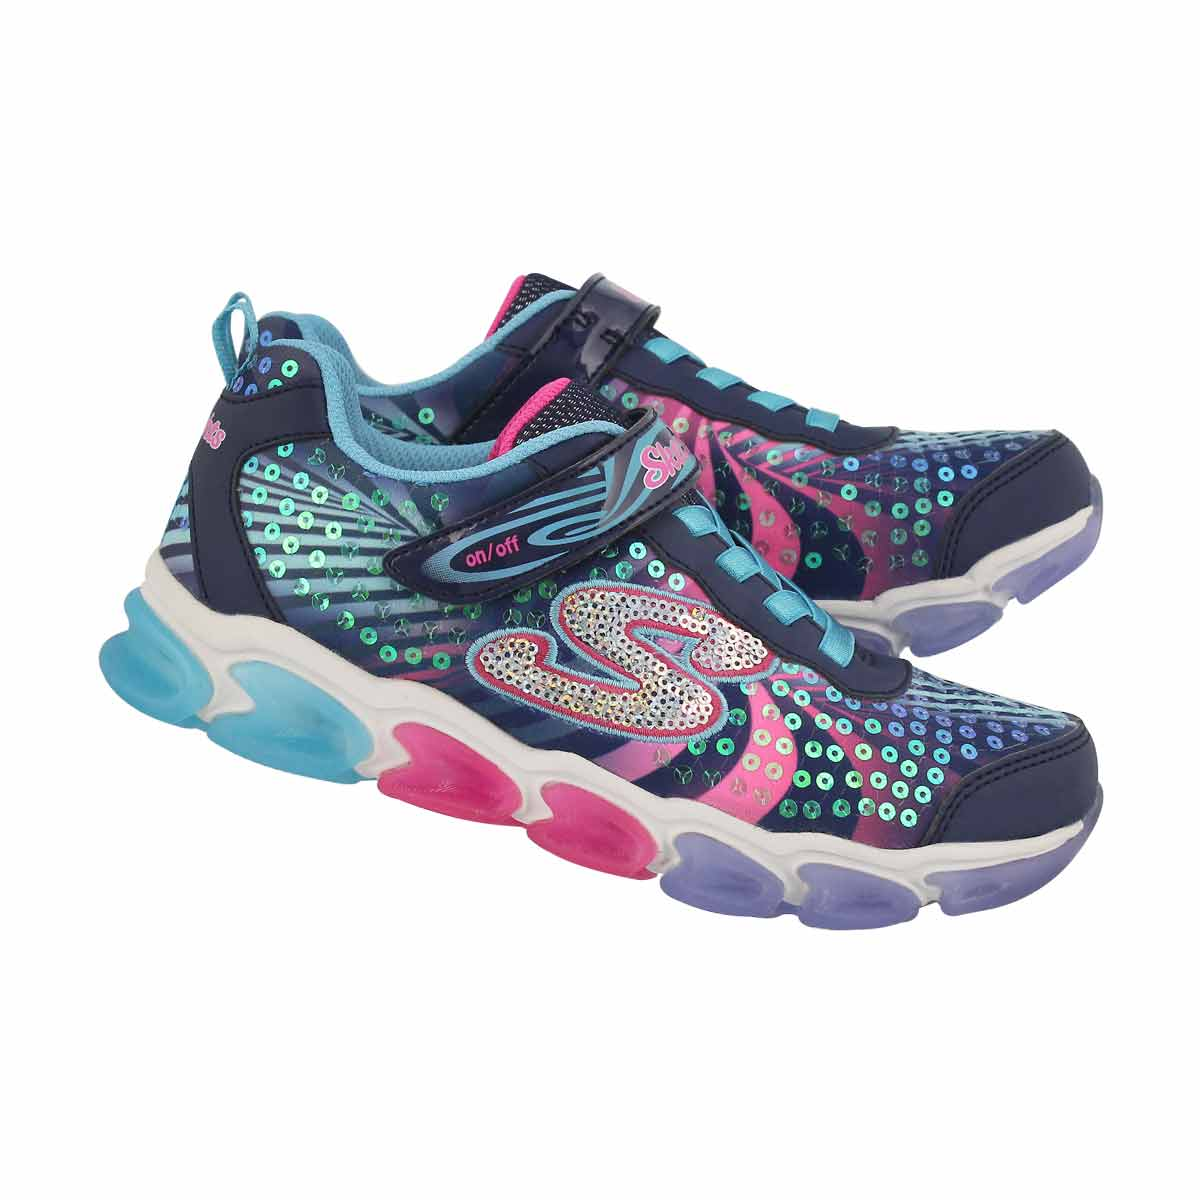 Grls Jelly Beams nvy/mlt lightup sneaker